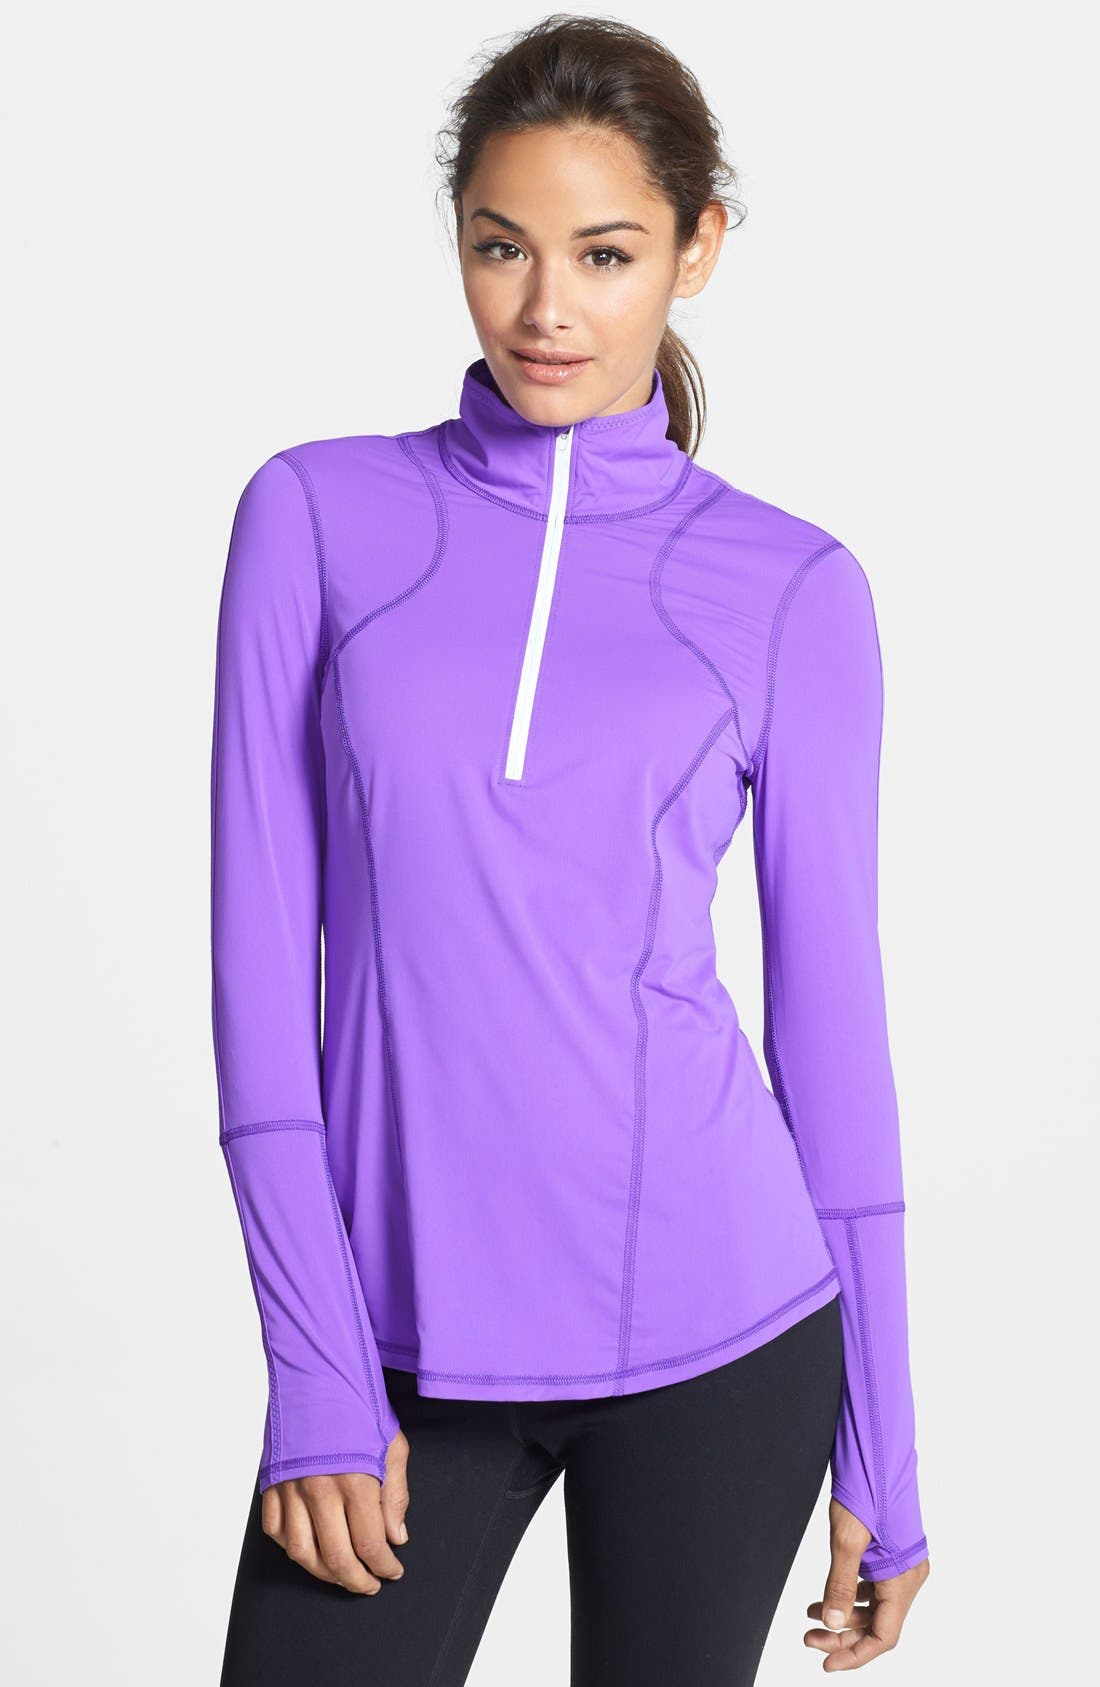 Alternate Image 1 Selected - Zella 'On the Run' Half Zip Top